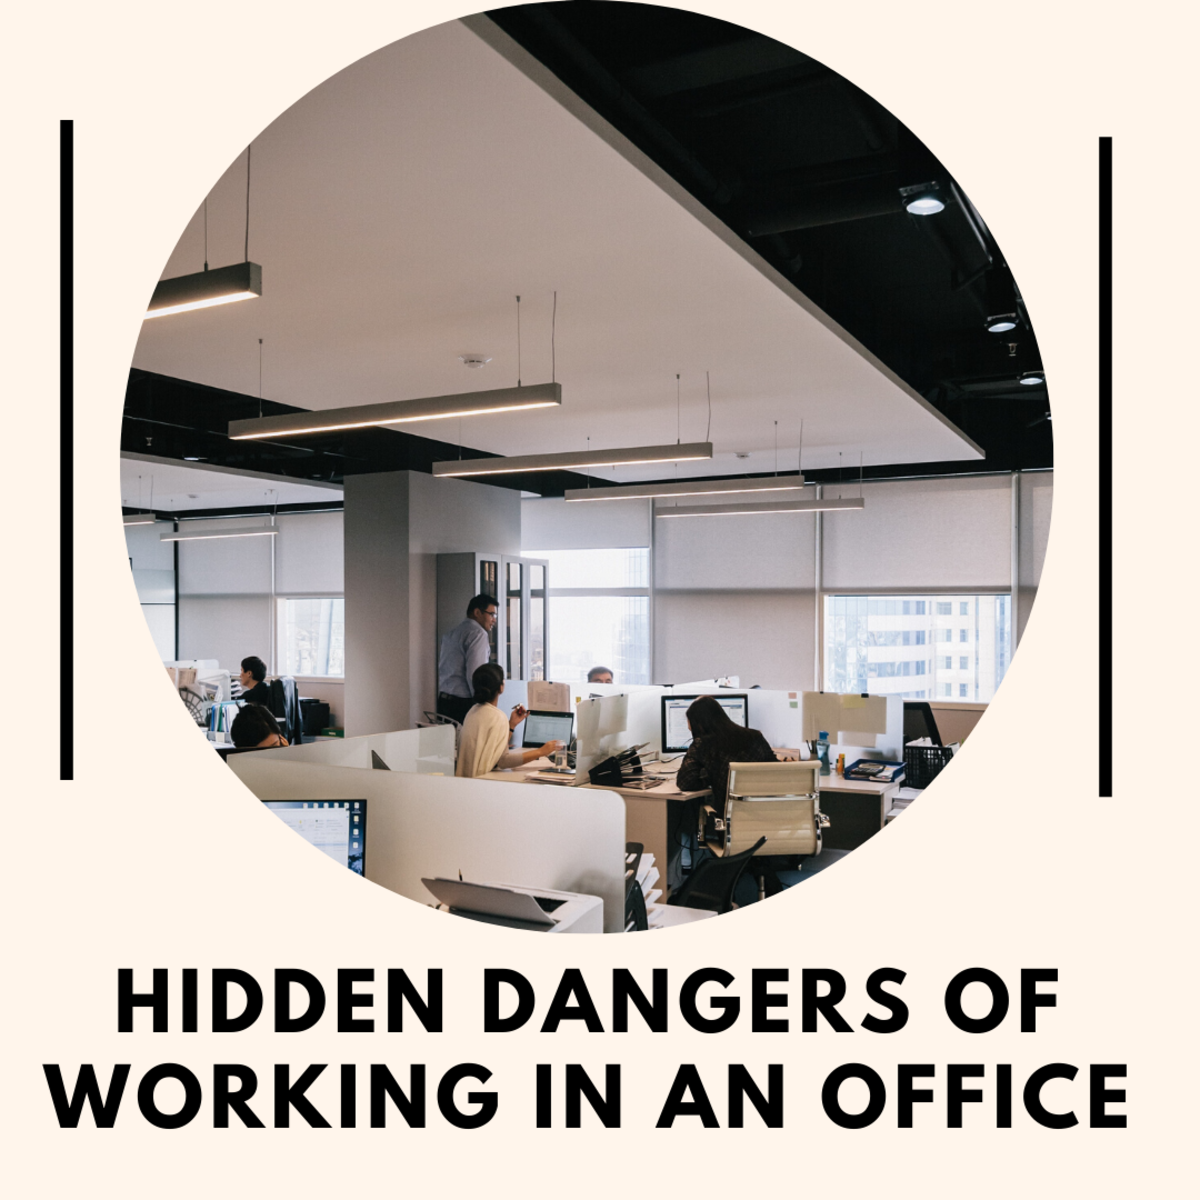 Surprisingly, working in an office has some hidden dangers you should know about.